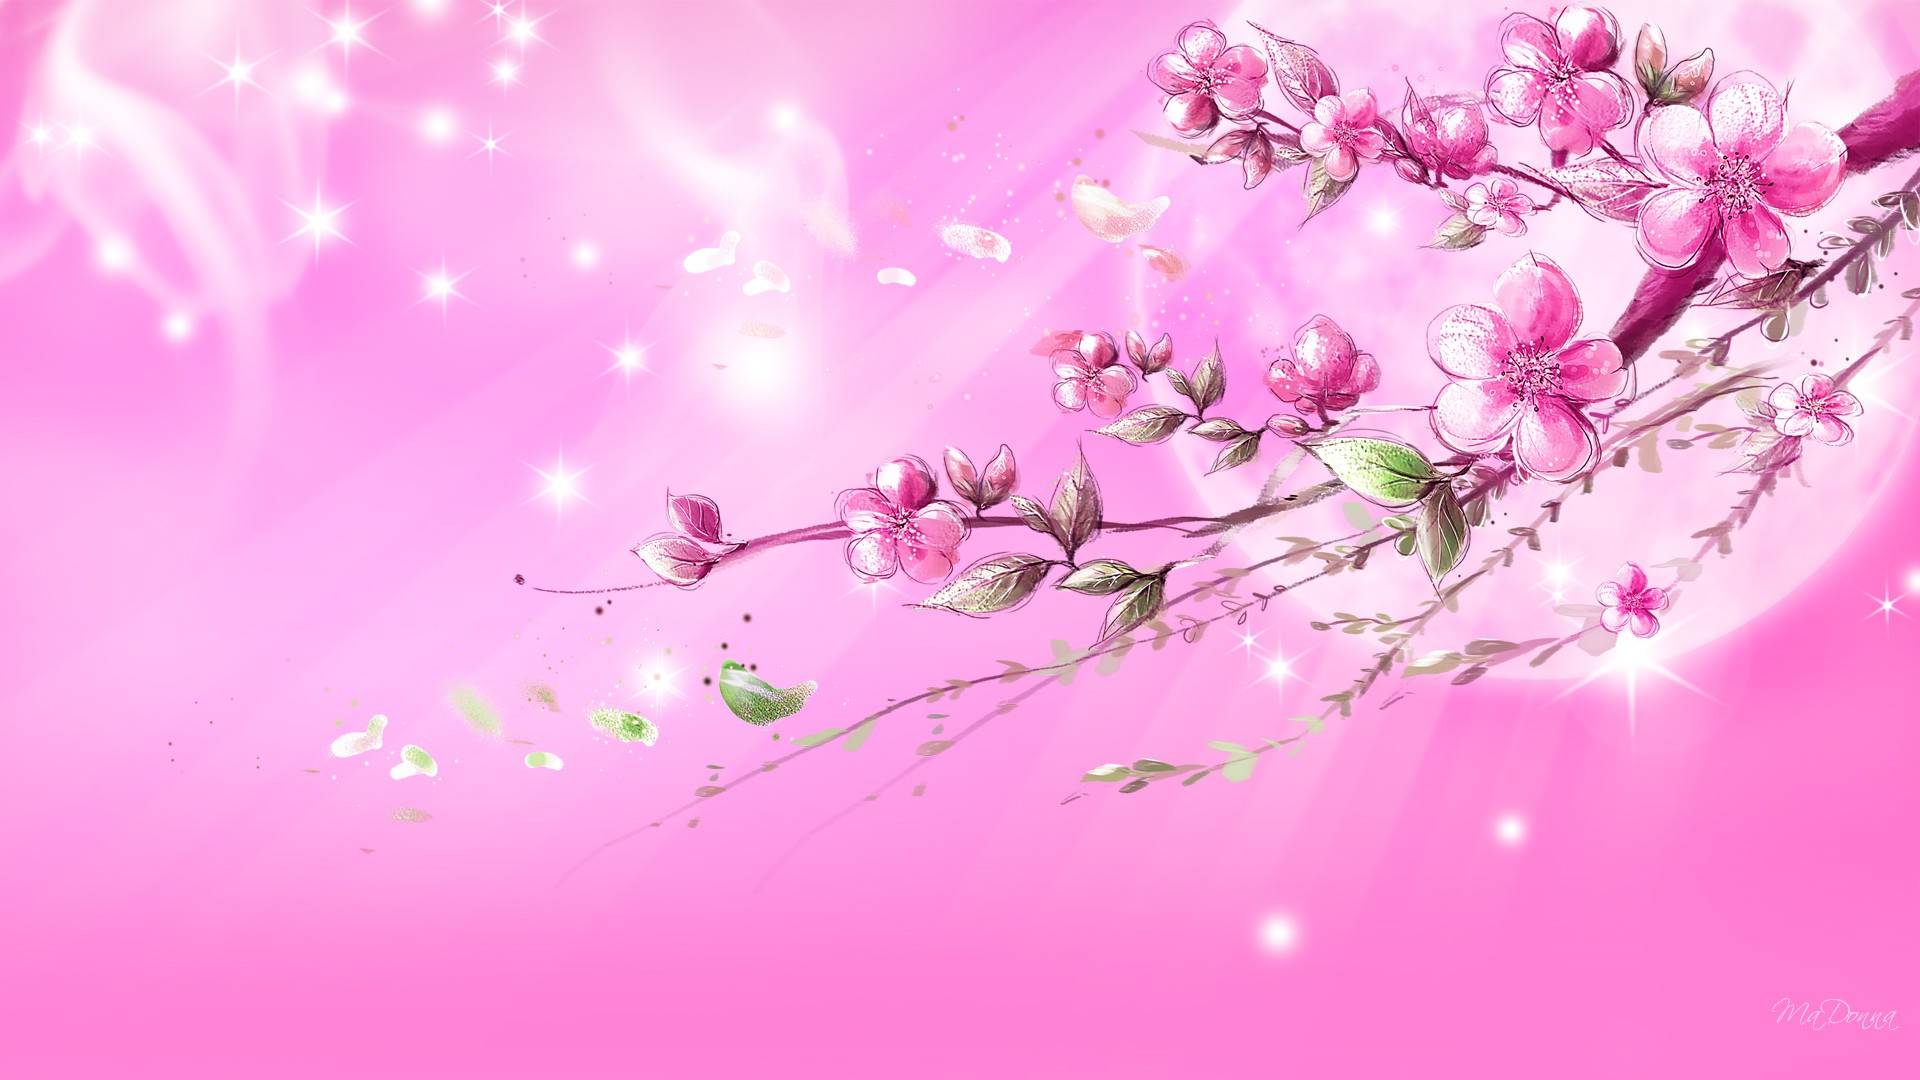 35 High Definition Pink Wallpapersbackgrounds For Free Download